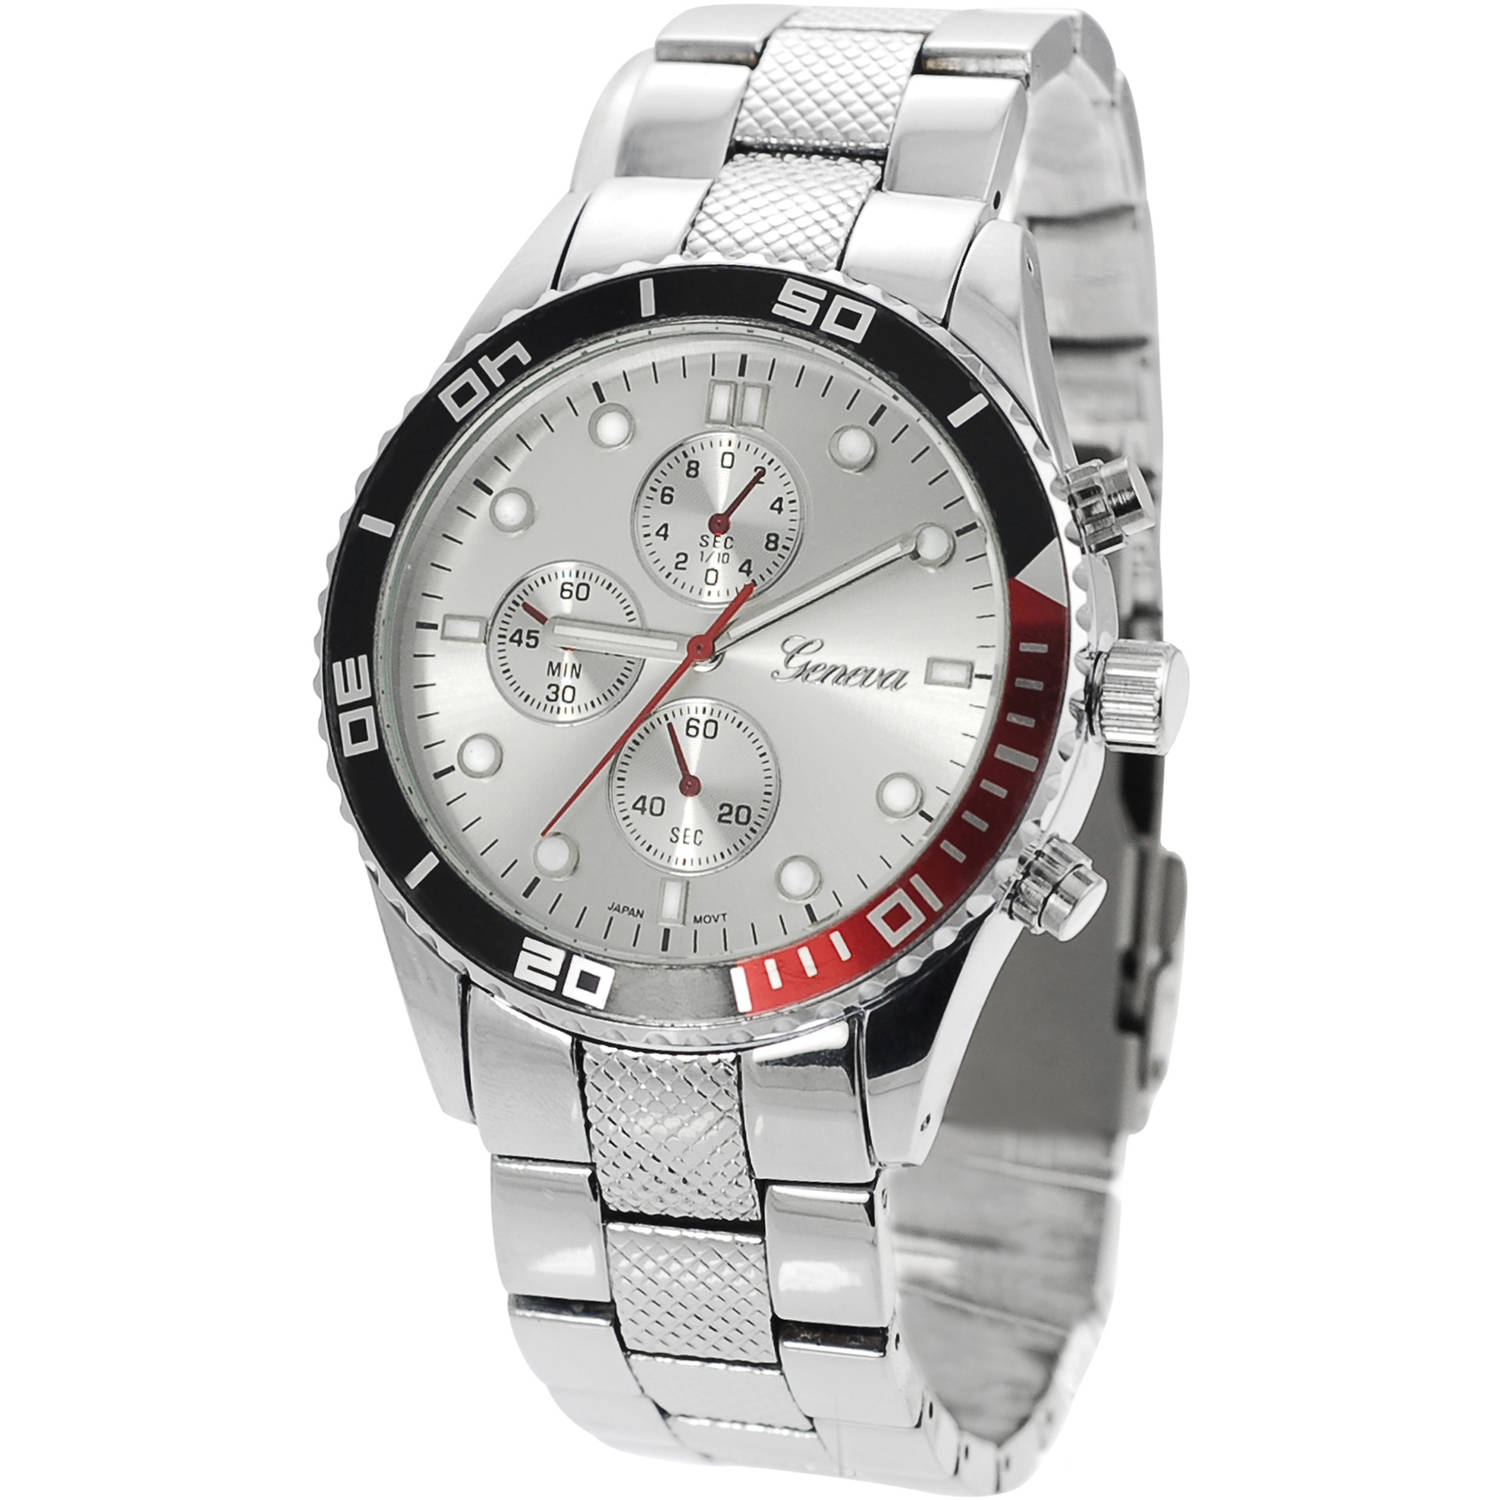 Image of Aktion Men's Chronograph Metal Link Fashion Watch, Silver/Red